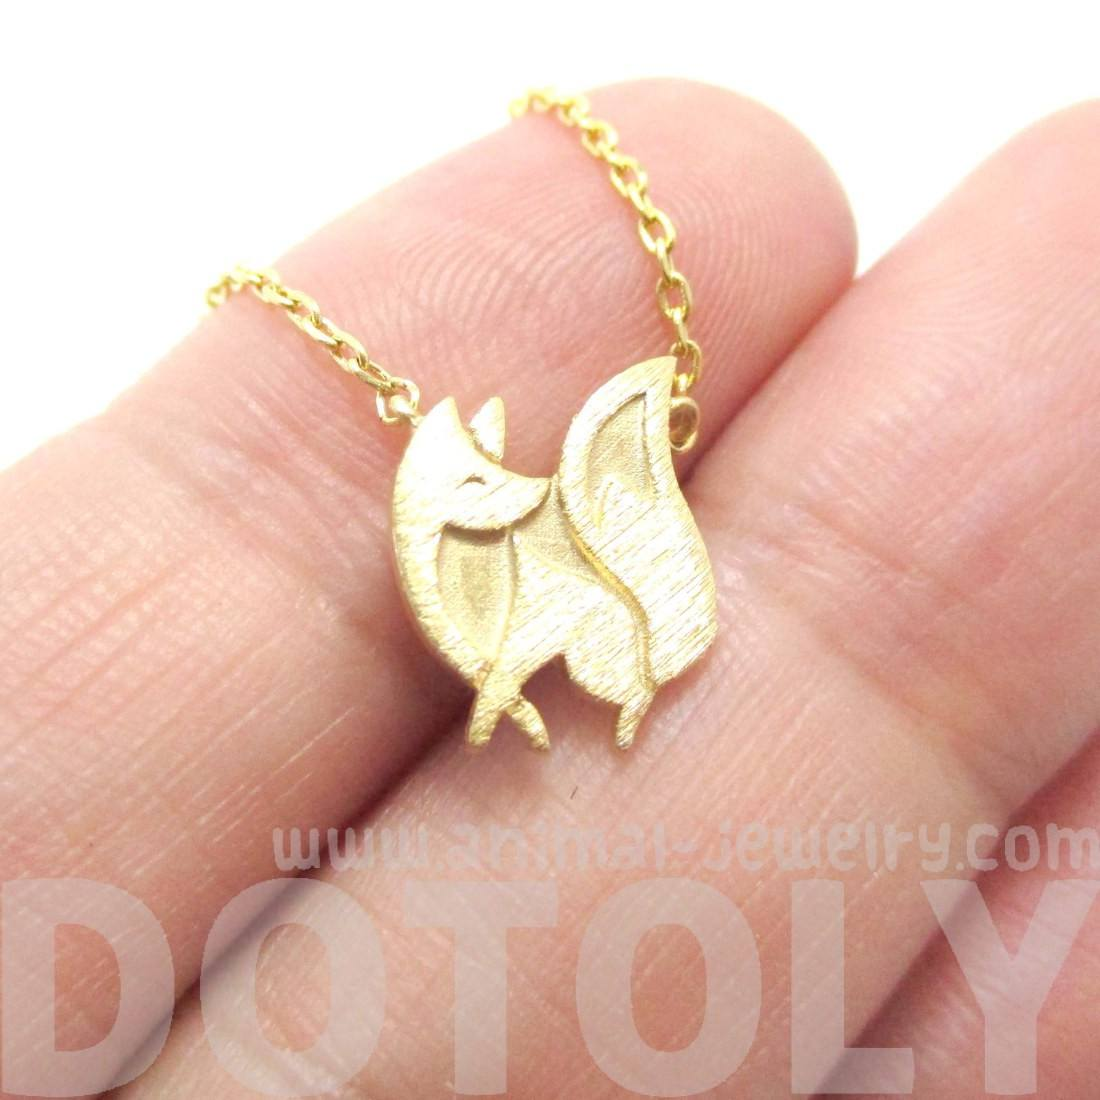 Baby Fox Shaped Silhouette Pendant Necklace in Gold